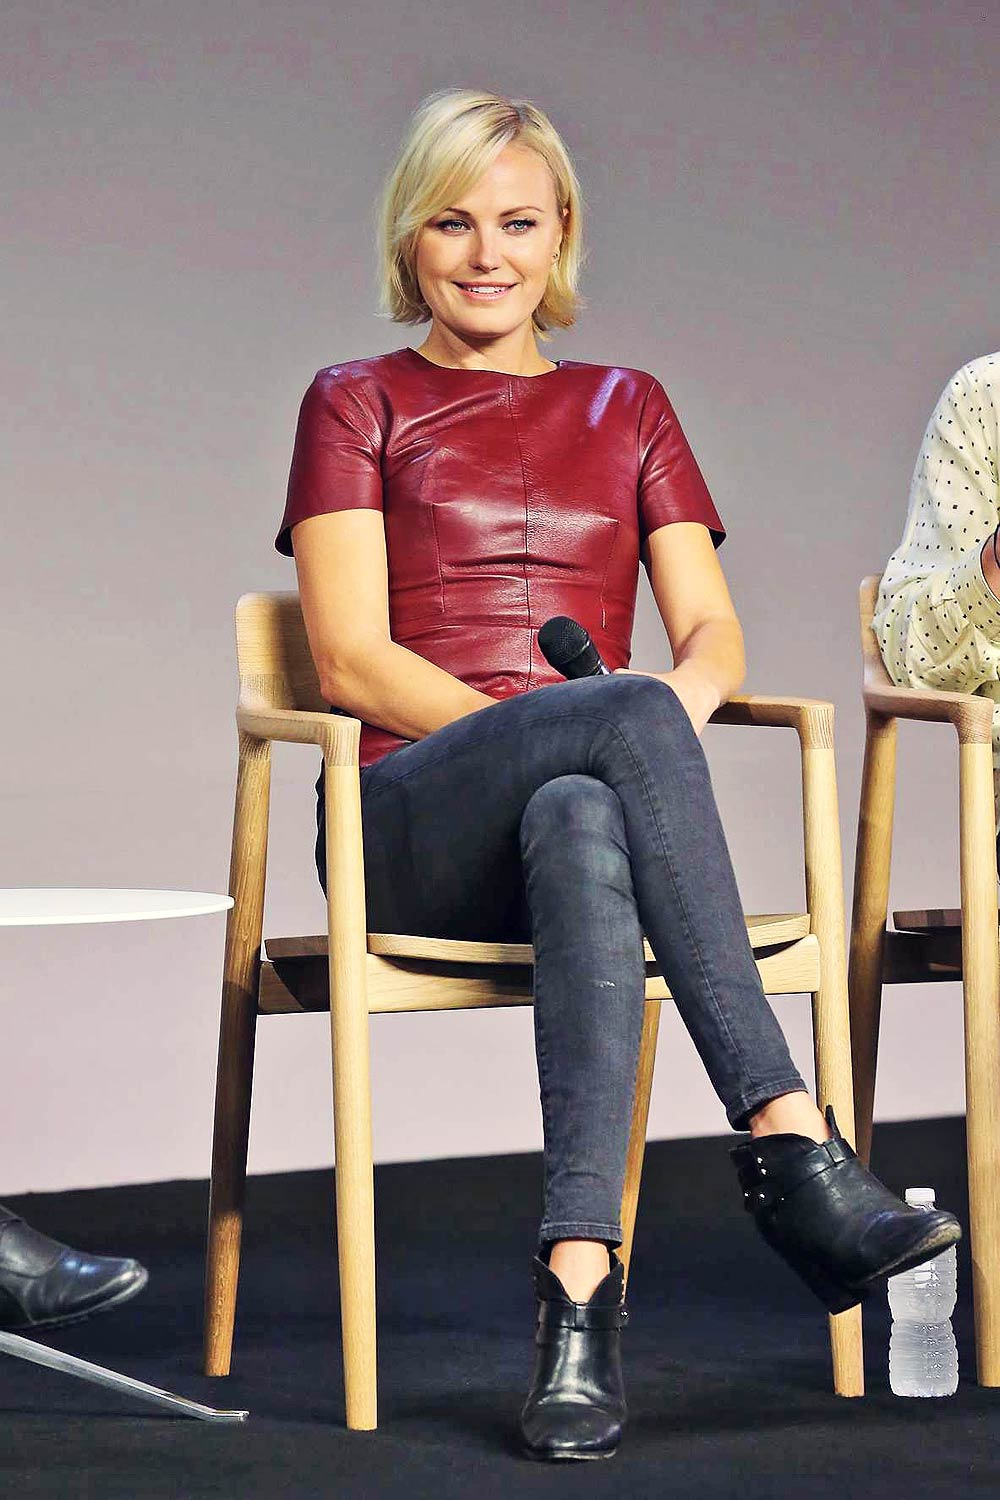 Malin Akerman Discusses The Film The Final Girls Leather